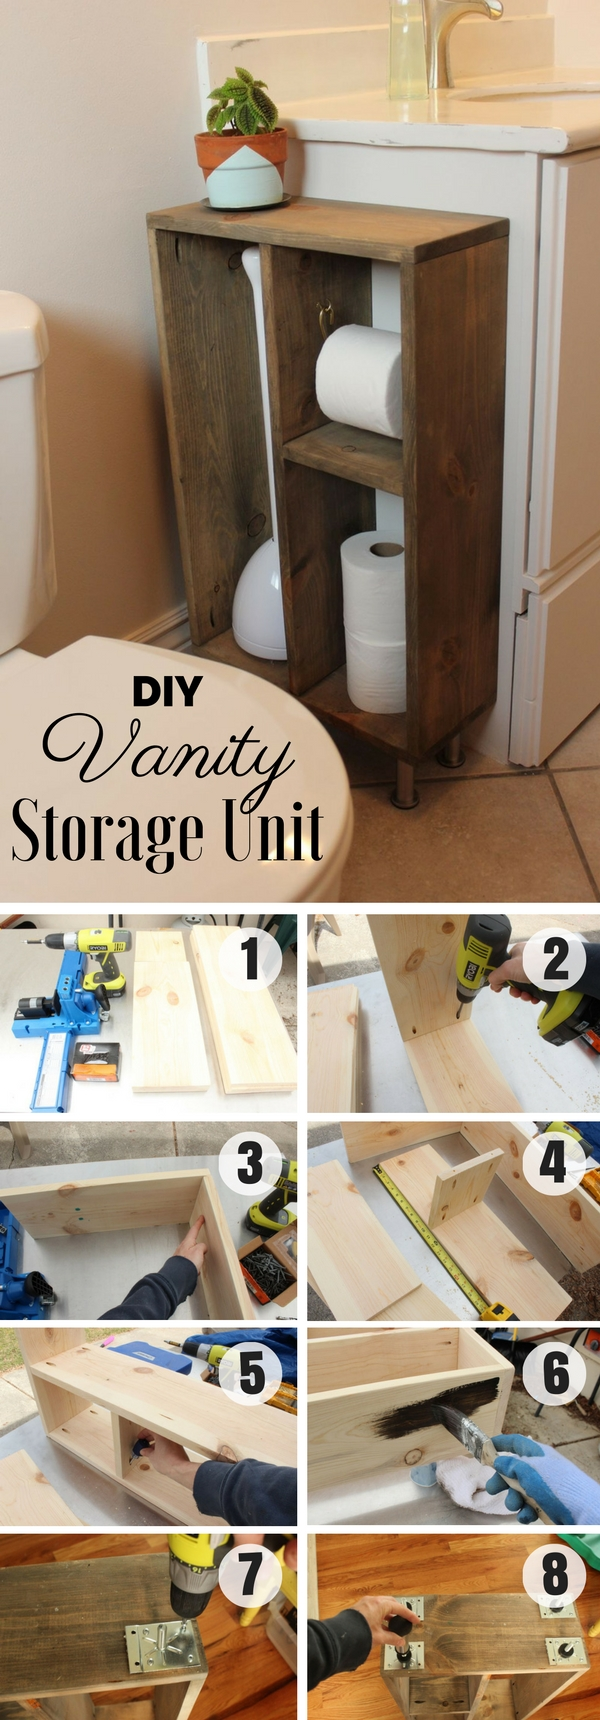 #DIY Vanity Storage Unit for rustic bathroom decor #bathroomdecor